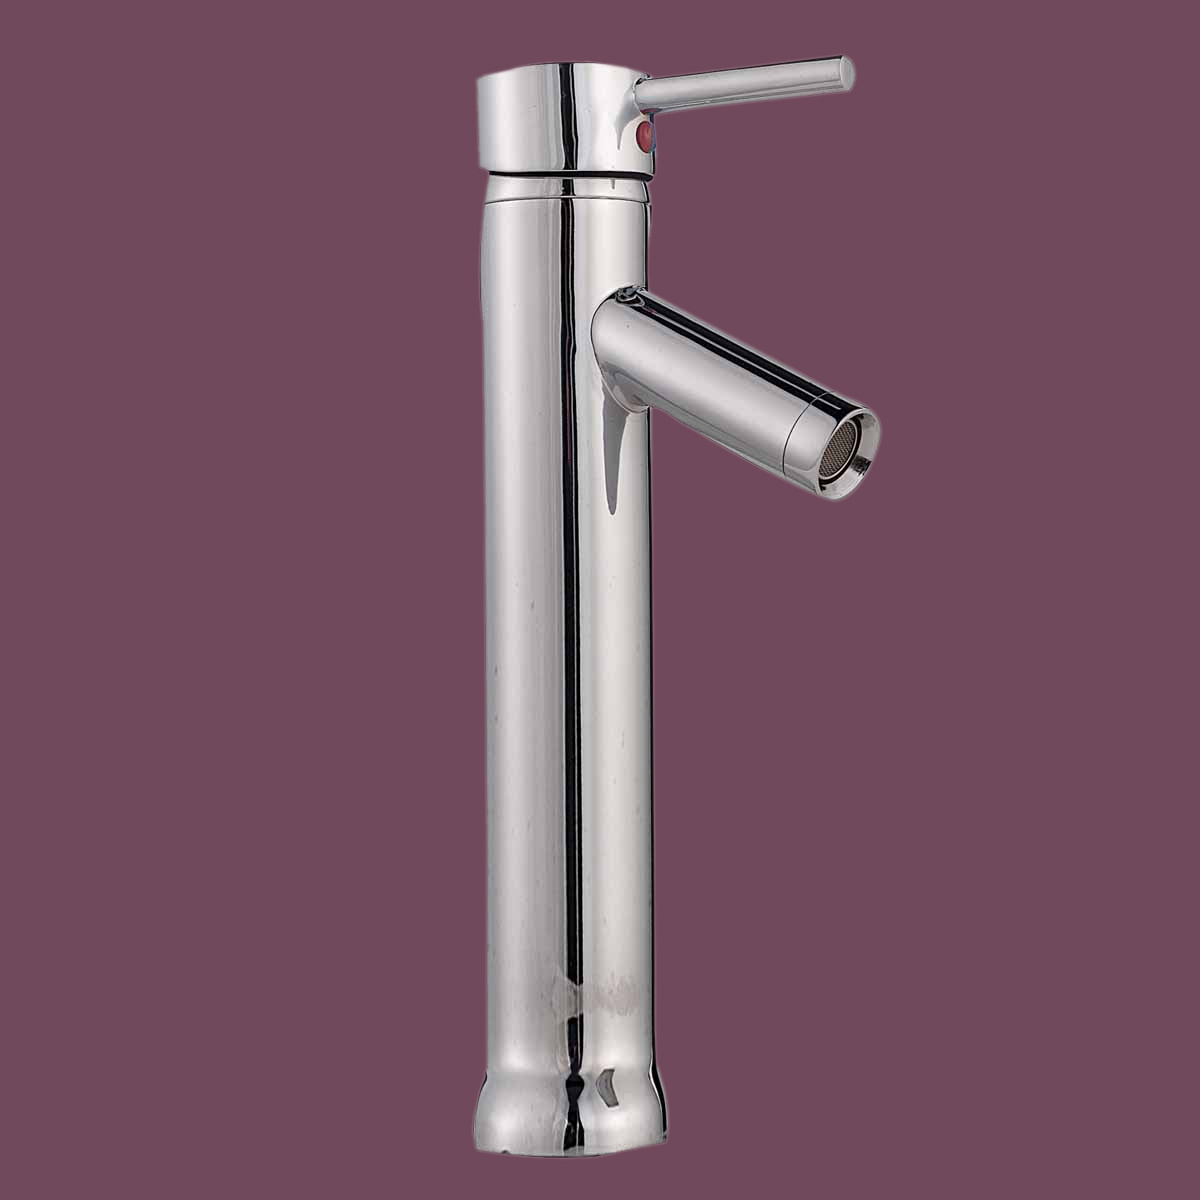 "Single Lever Bathroom Faucets: Bathroom Faucet Chrome Lever 1 Handle Tall 12""H Single Hole"